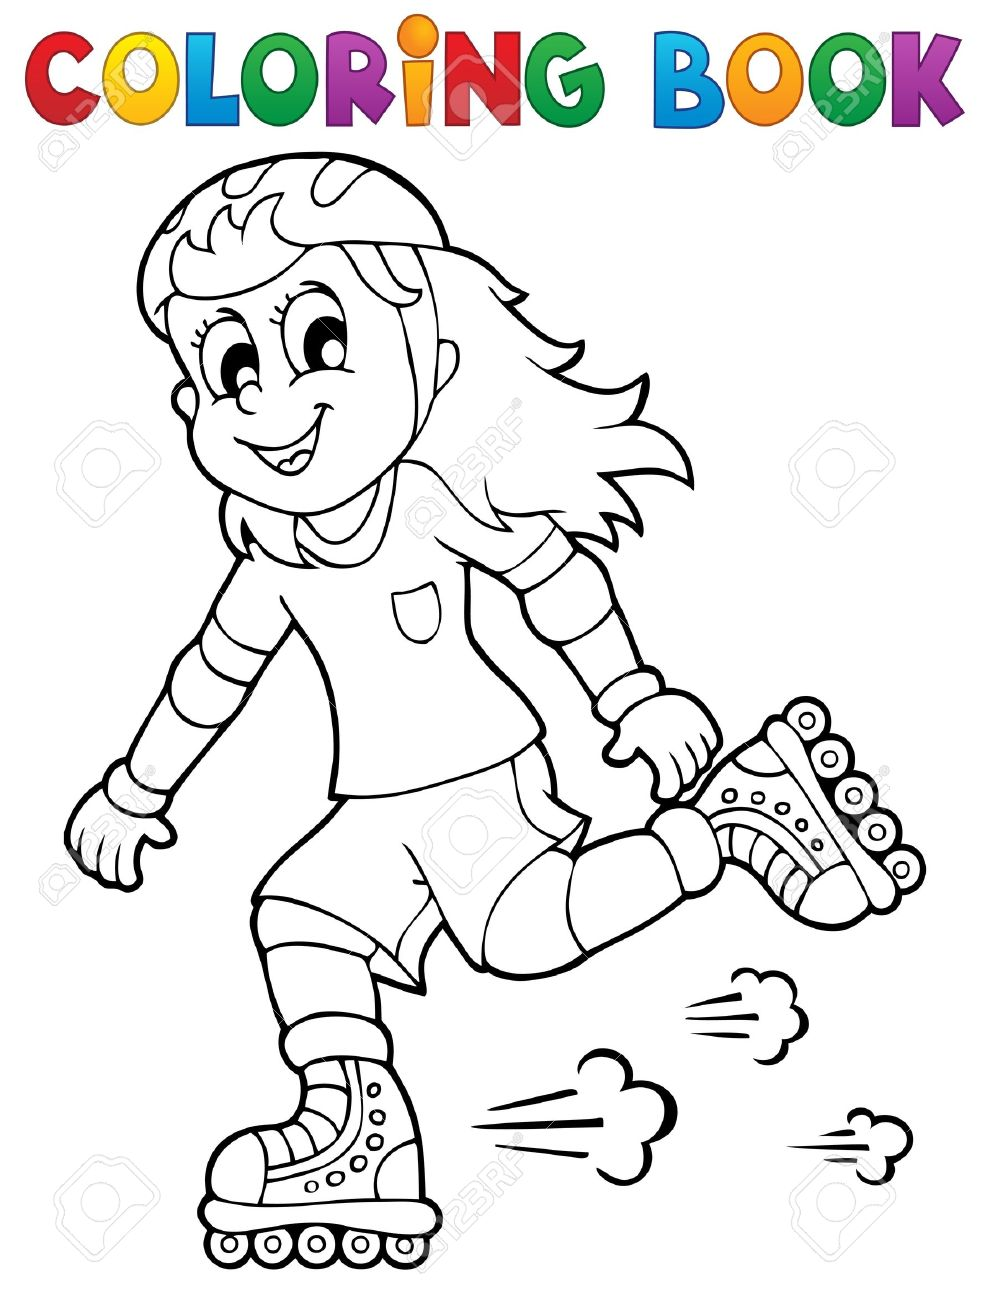 Free roller skating coloring pages - Roller Skating Coloring Book Outdoor Sport